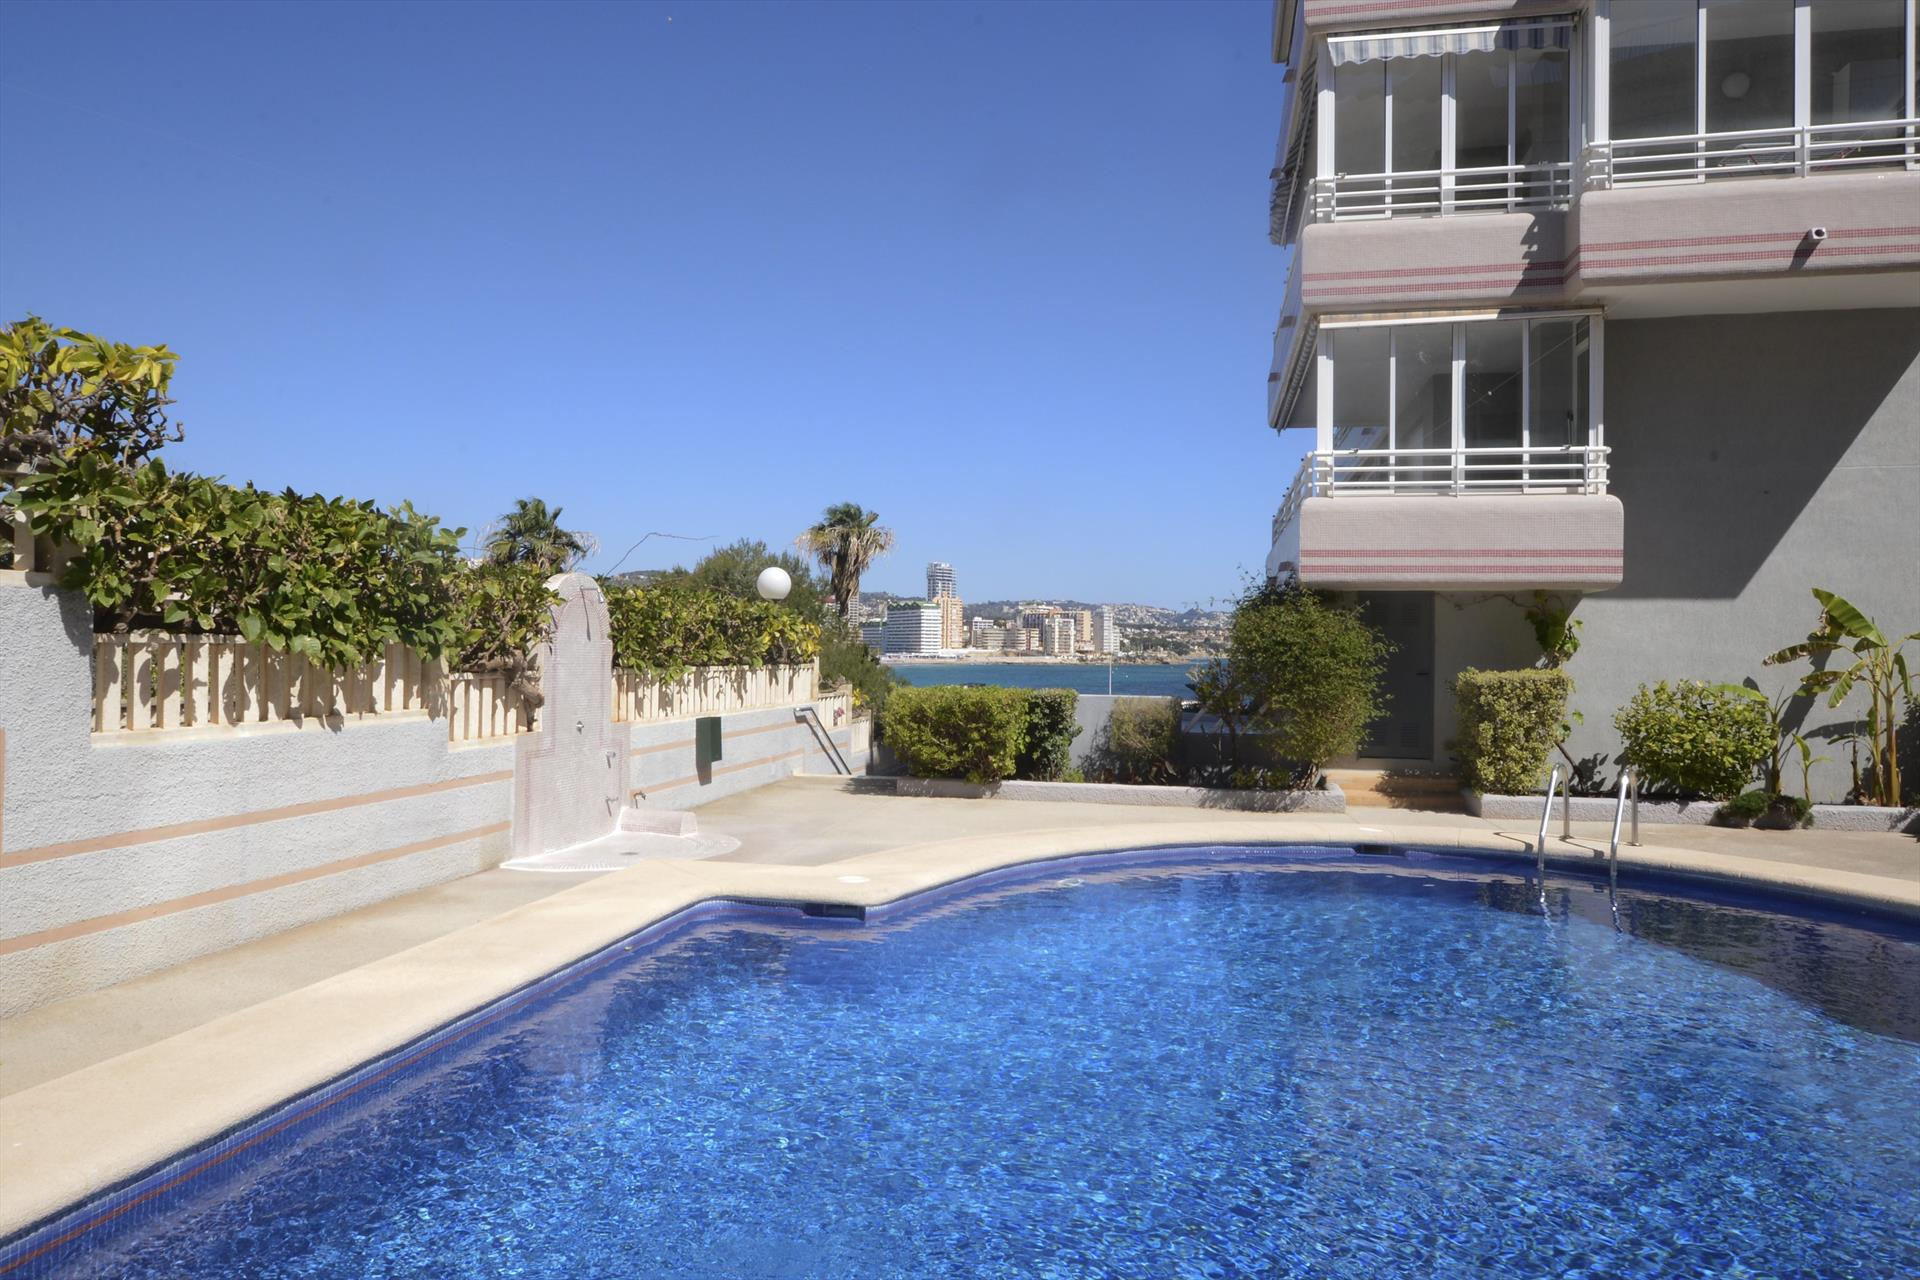 Apartamento Bahia Mar 3A, Apartment  with communal pool in Calpe, on the Costa Blanca, Spain for 6 persons.....